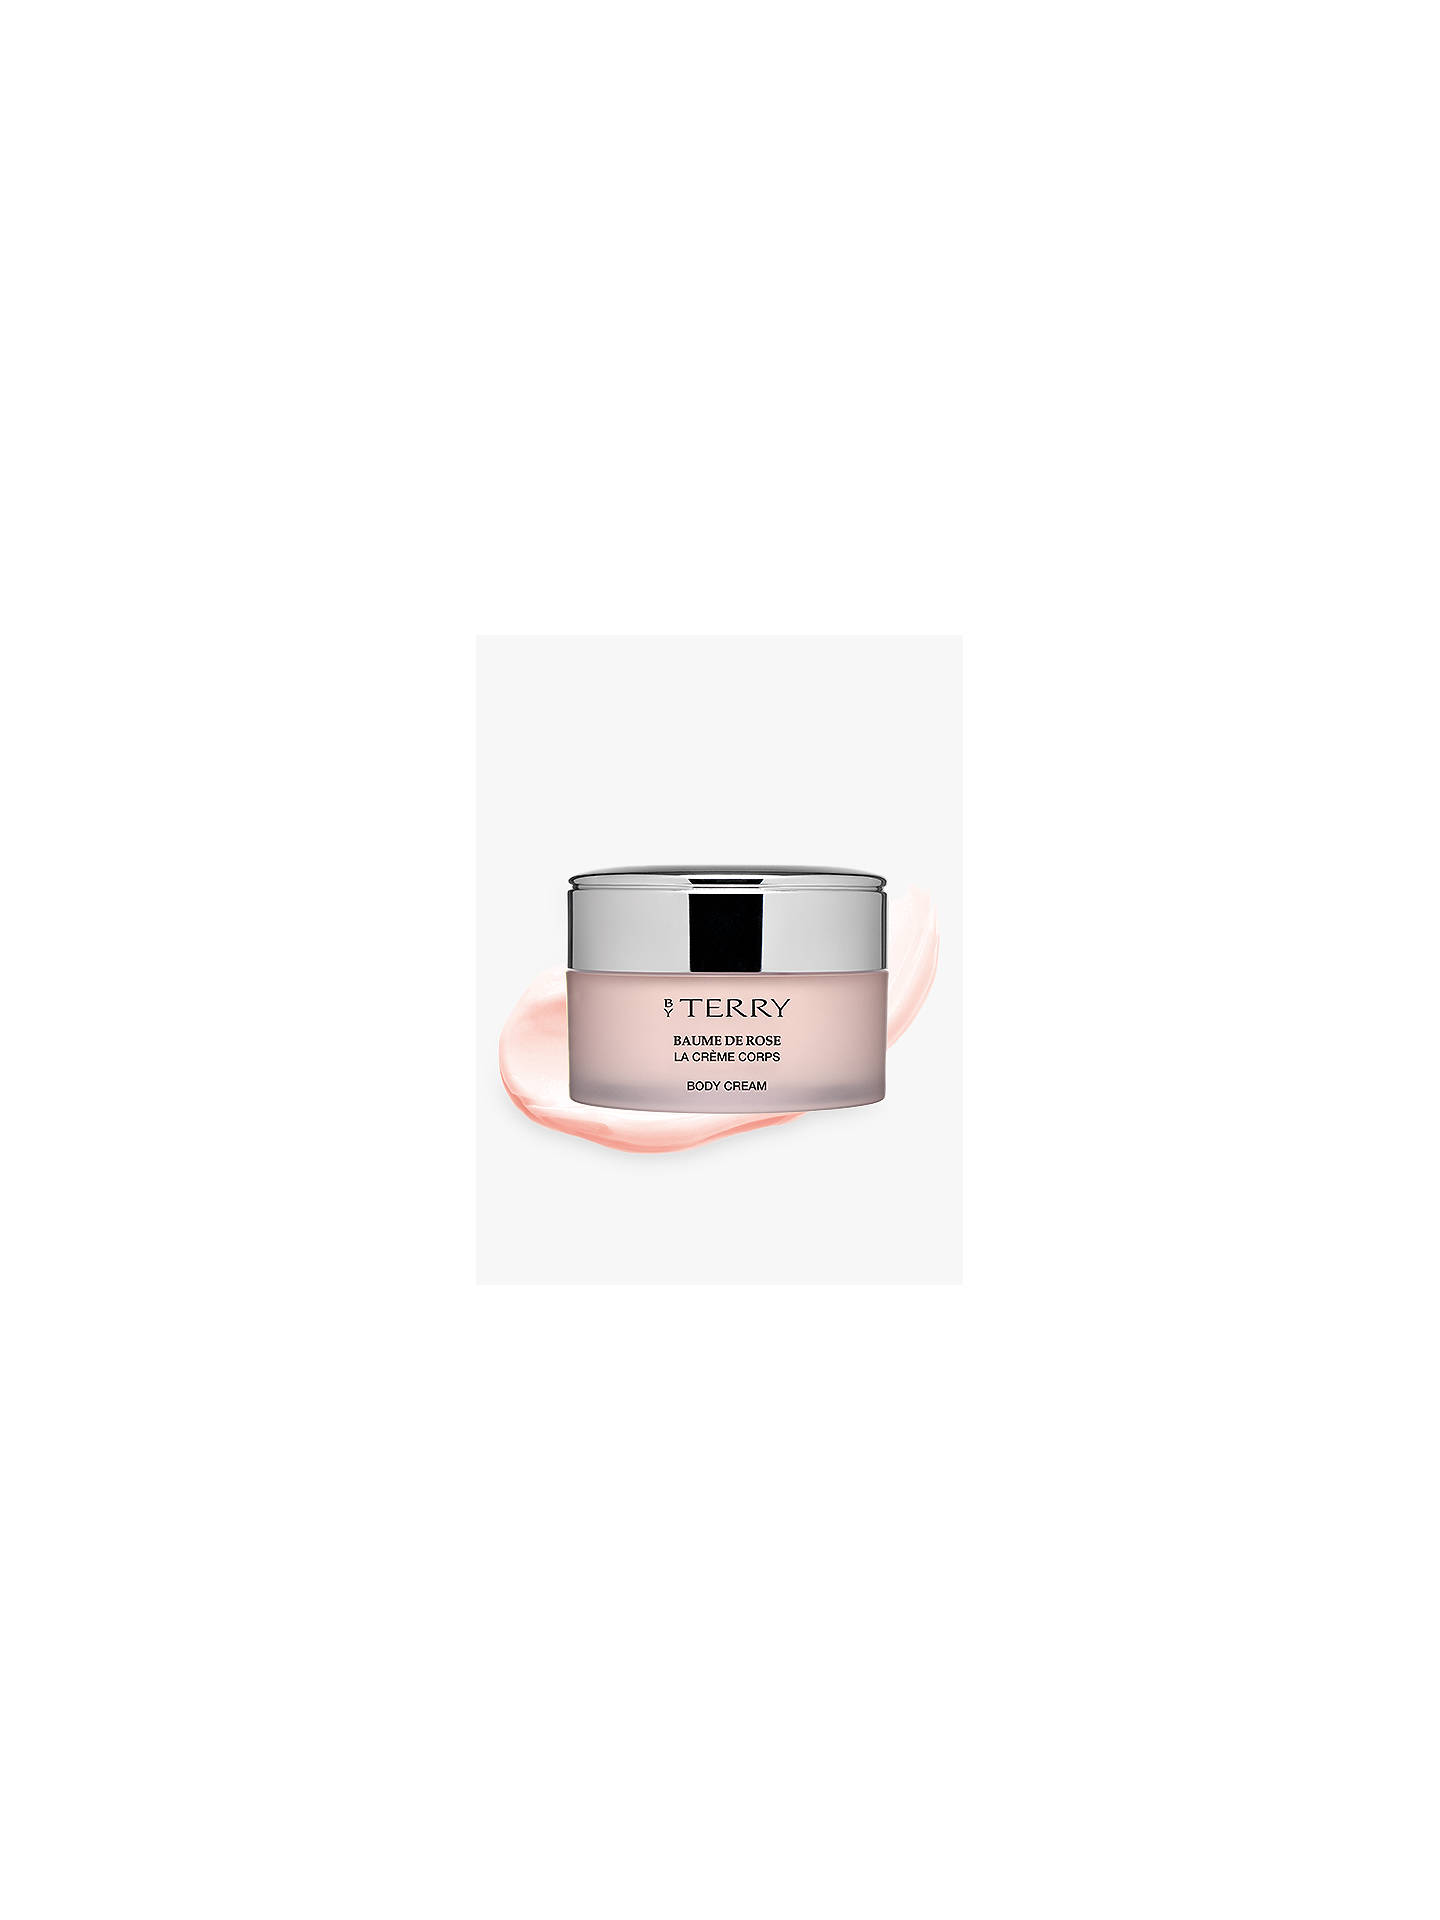 BuyBY TERRY Baume de Rose Body Lotion, 200ml Online at johnlewis.com